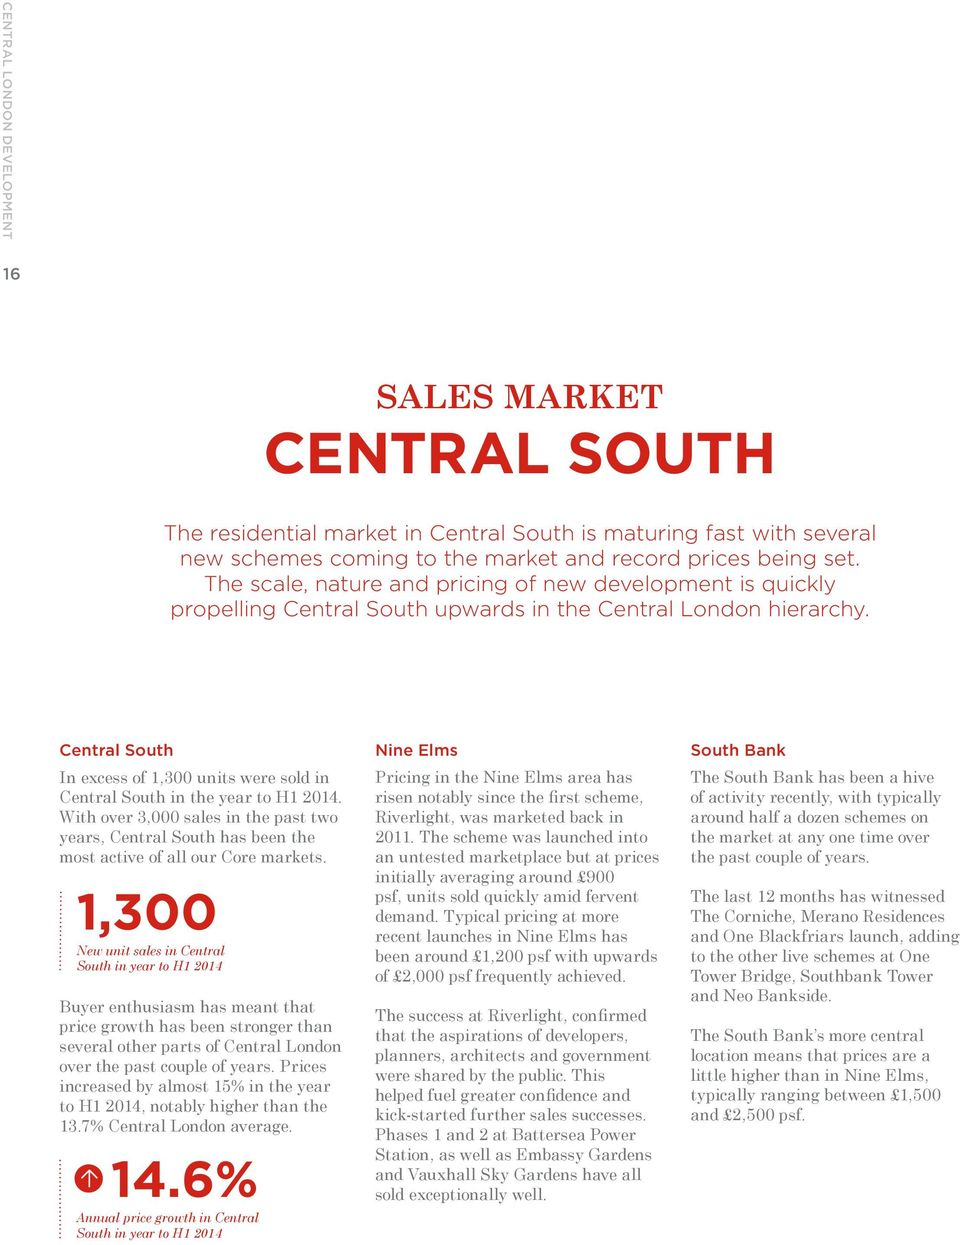 Central South In excess of 1,300 units were sold in Central South in the year to H1 2014. With over 3,000 sales in the past two years, Central South has been the most active of all our Core markets.